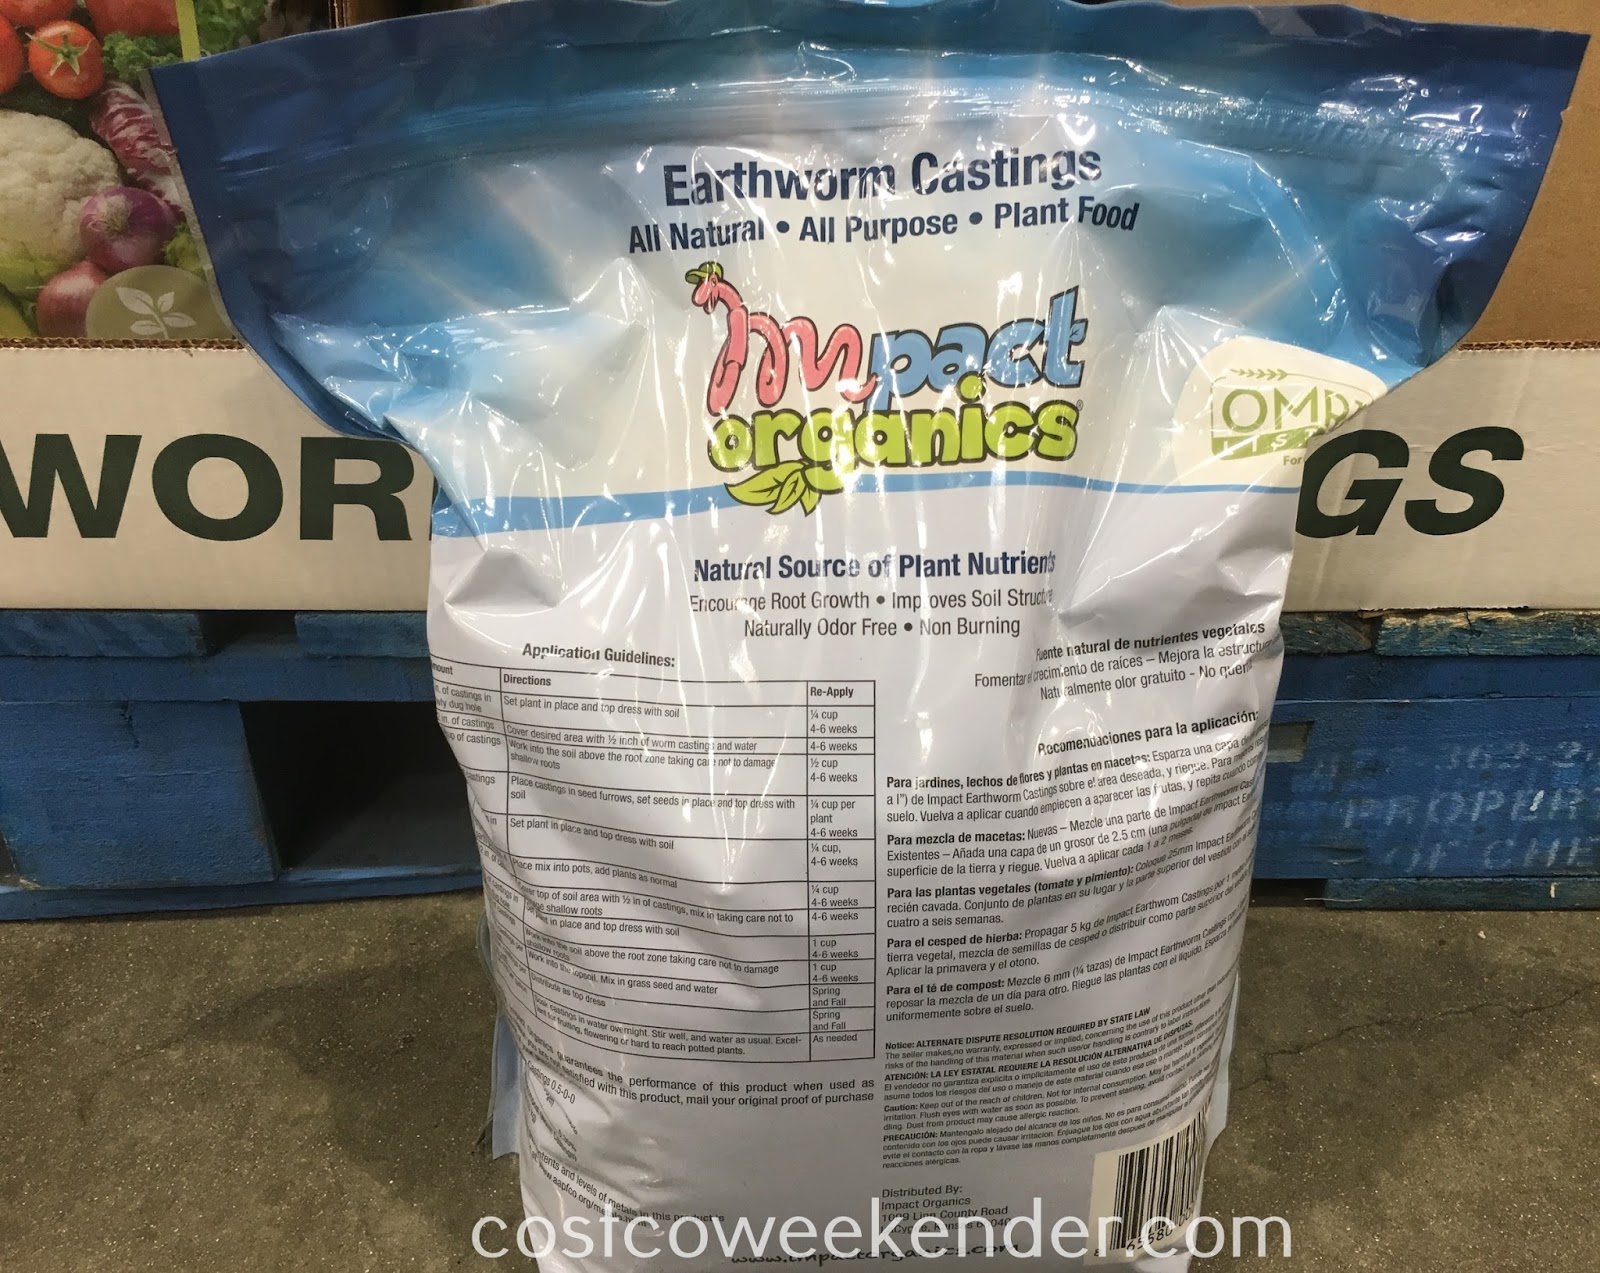 Costco 1025841 - Impact Organics All Purpose Plant Food Earthworm Castings: great for any garden or backyard